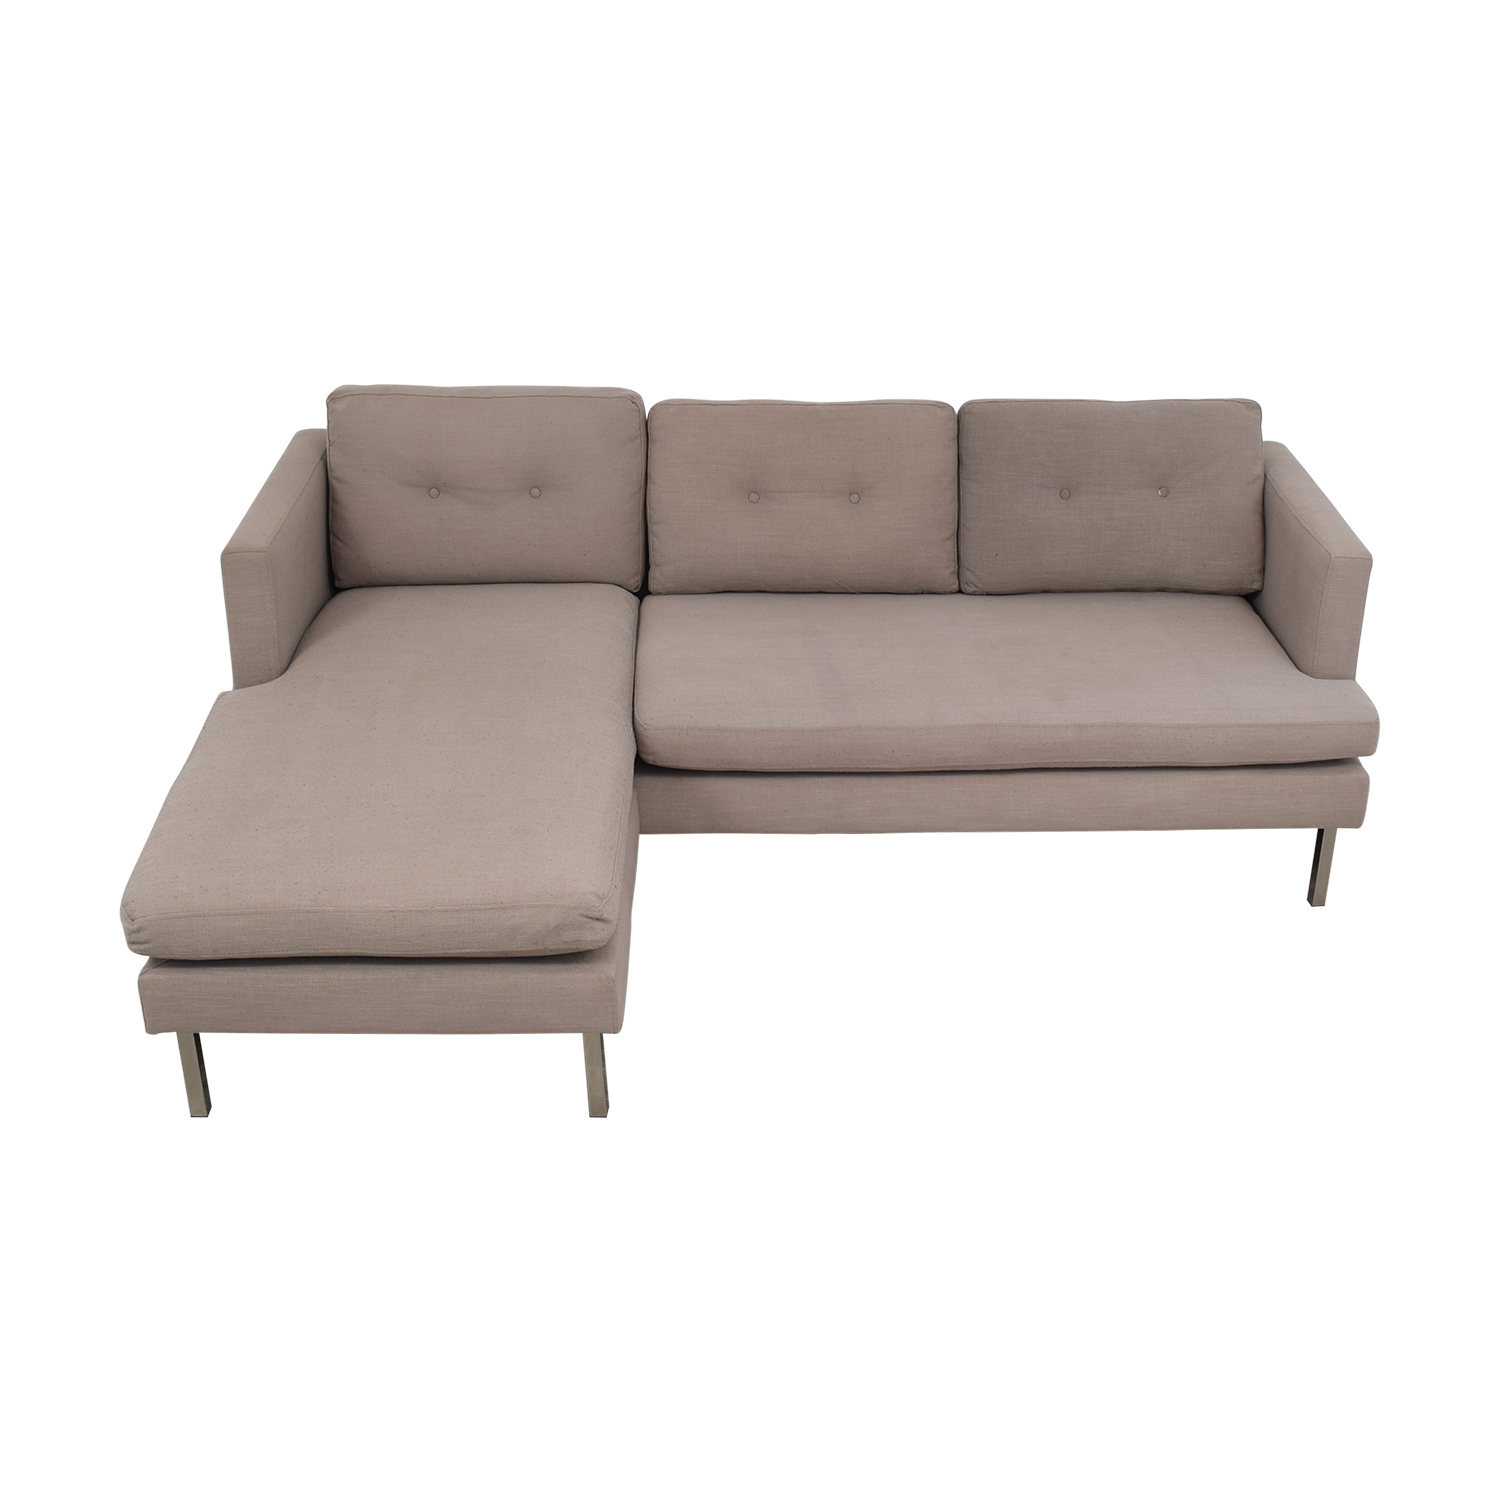 73% Off – West Elm West Elm Marco Two Piece Sectional Sofa Intended For West Elm Sectional Sofas (View 7 of 15)